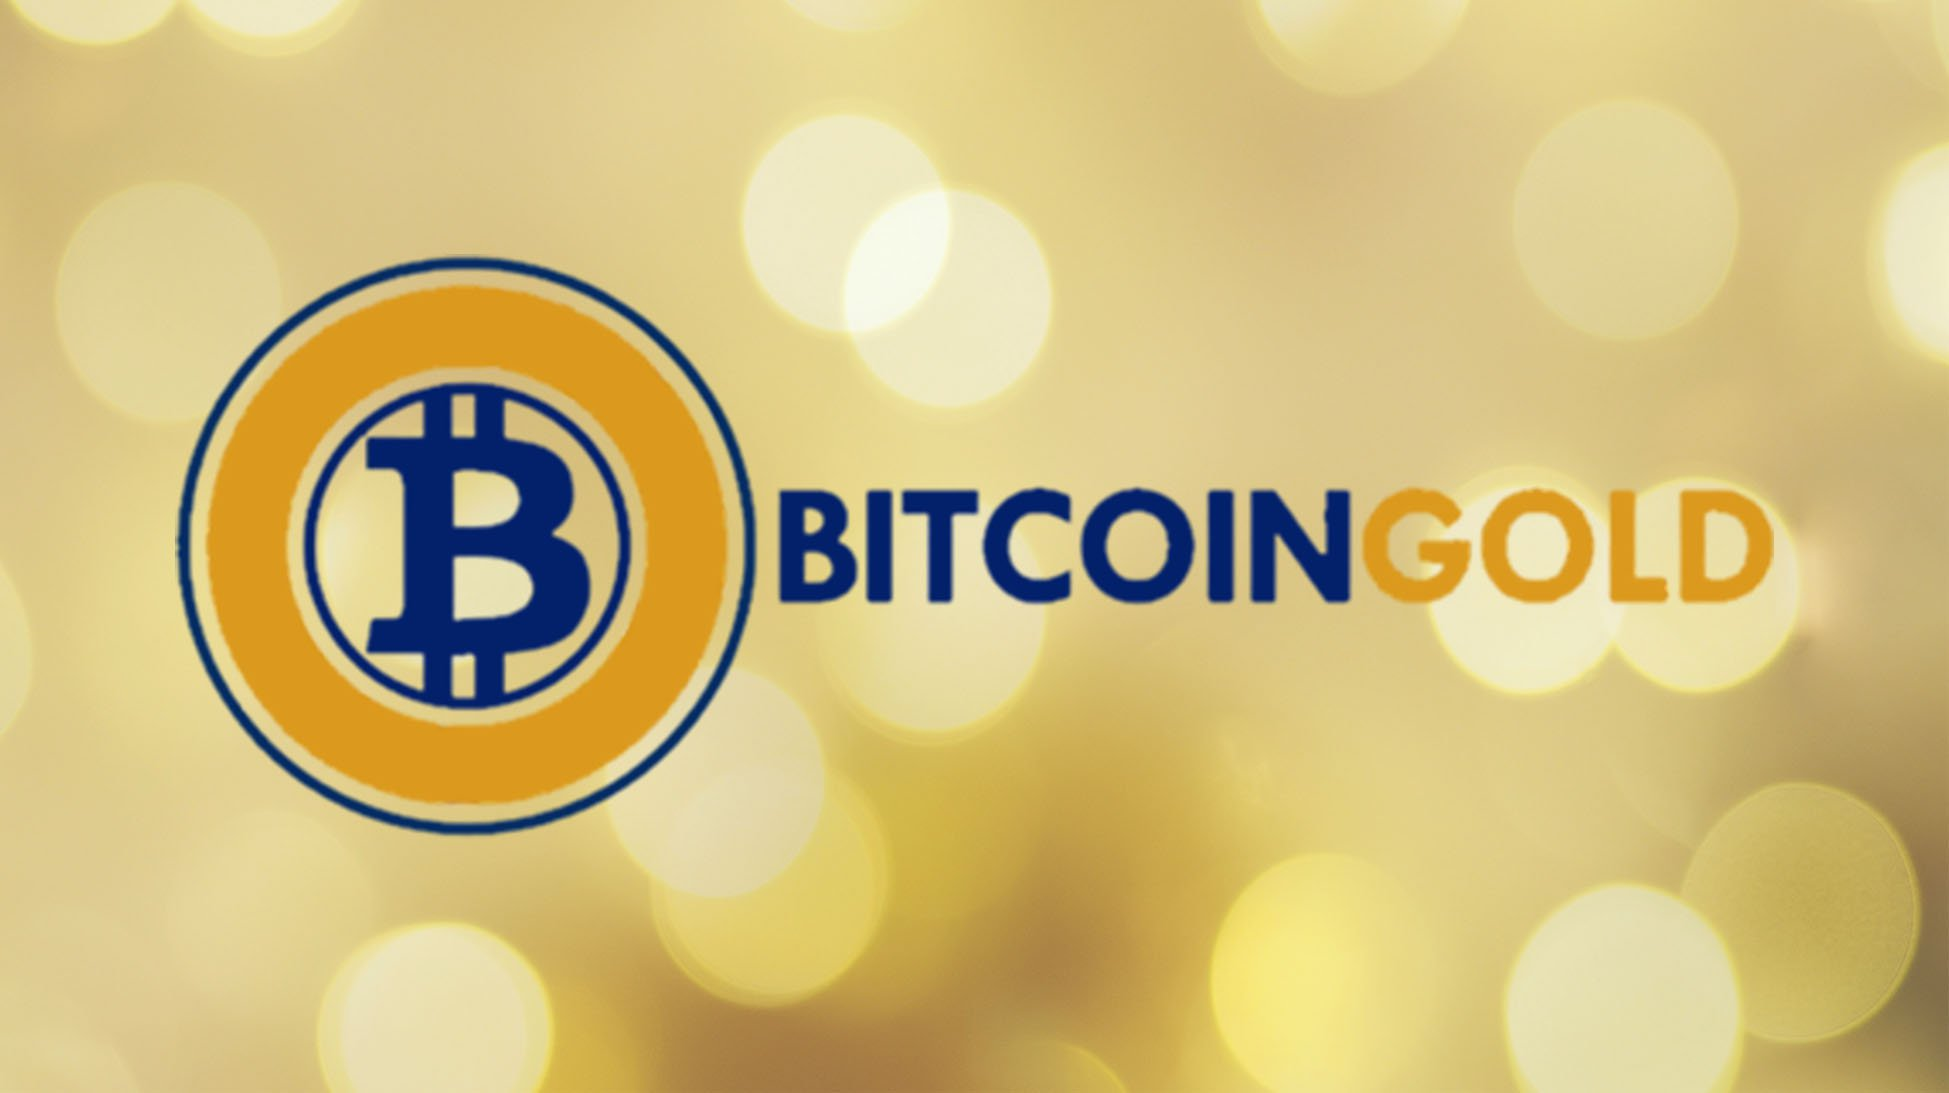 Bitcoin gold launches tomorrow bitcoin magazine bitcoin gold launches on november 12 ccuart Image collections